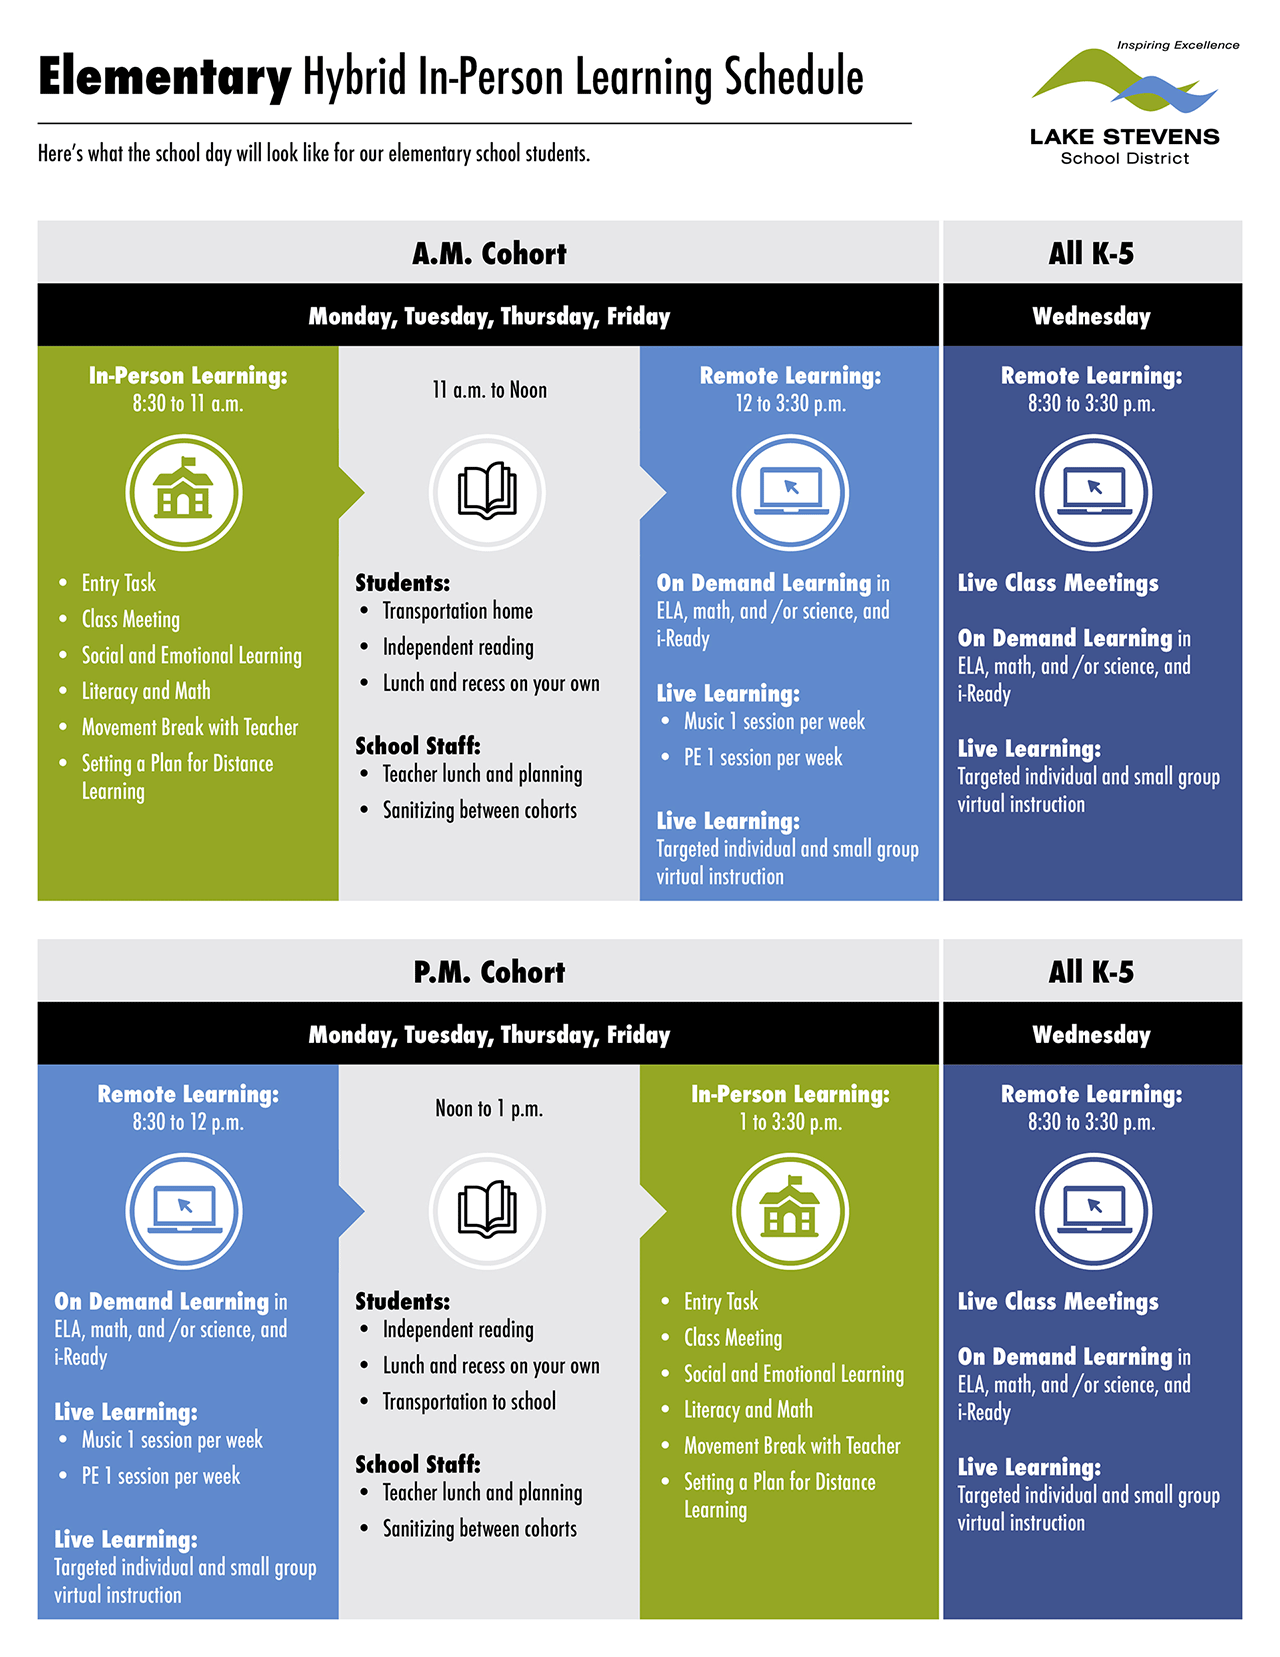 Elementary Hybrid In-Person Learning Schedule